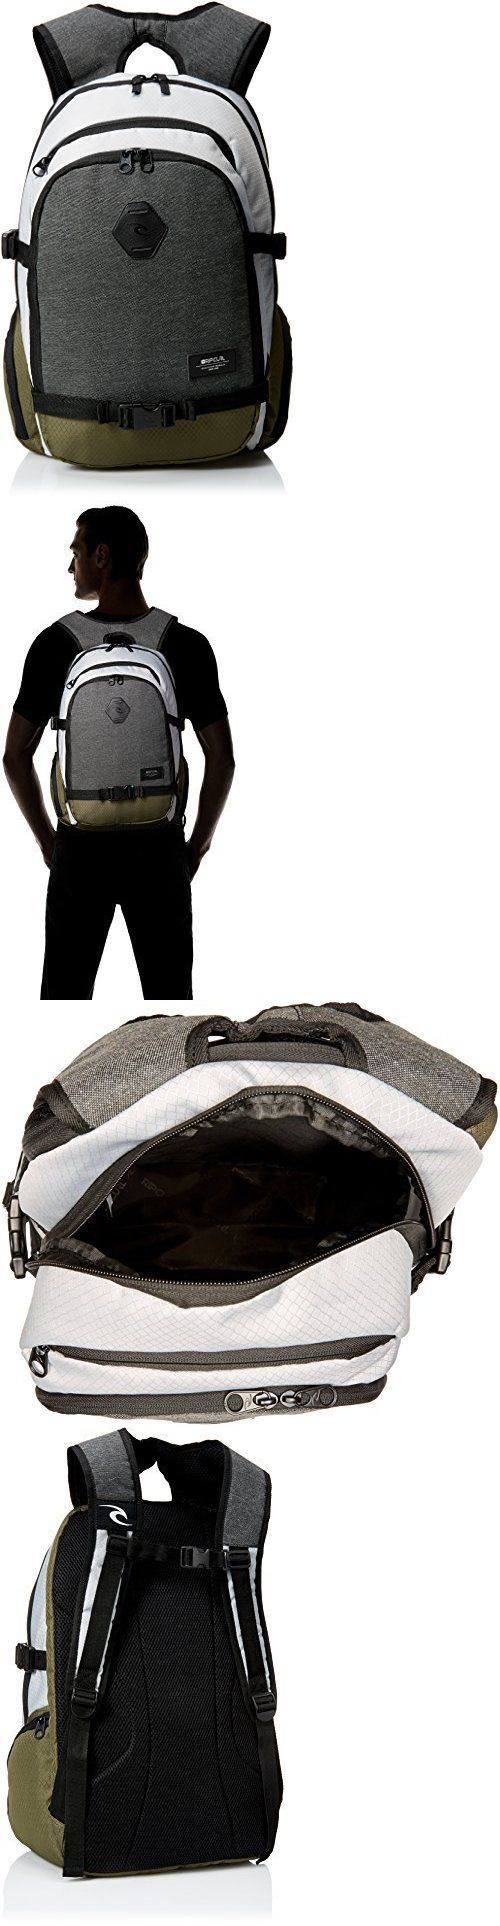 Other Skateboarding Clothing 159079: Rip Curl Men S Posse Stacka Backpack Grey Backpacks, New -> BUY IT NOW ONLY: $72.6 on eBay!